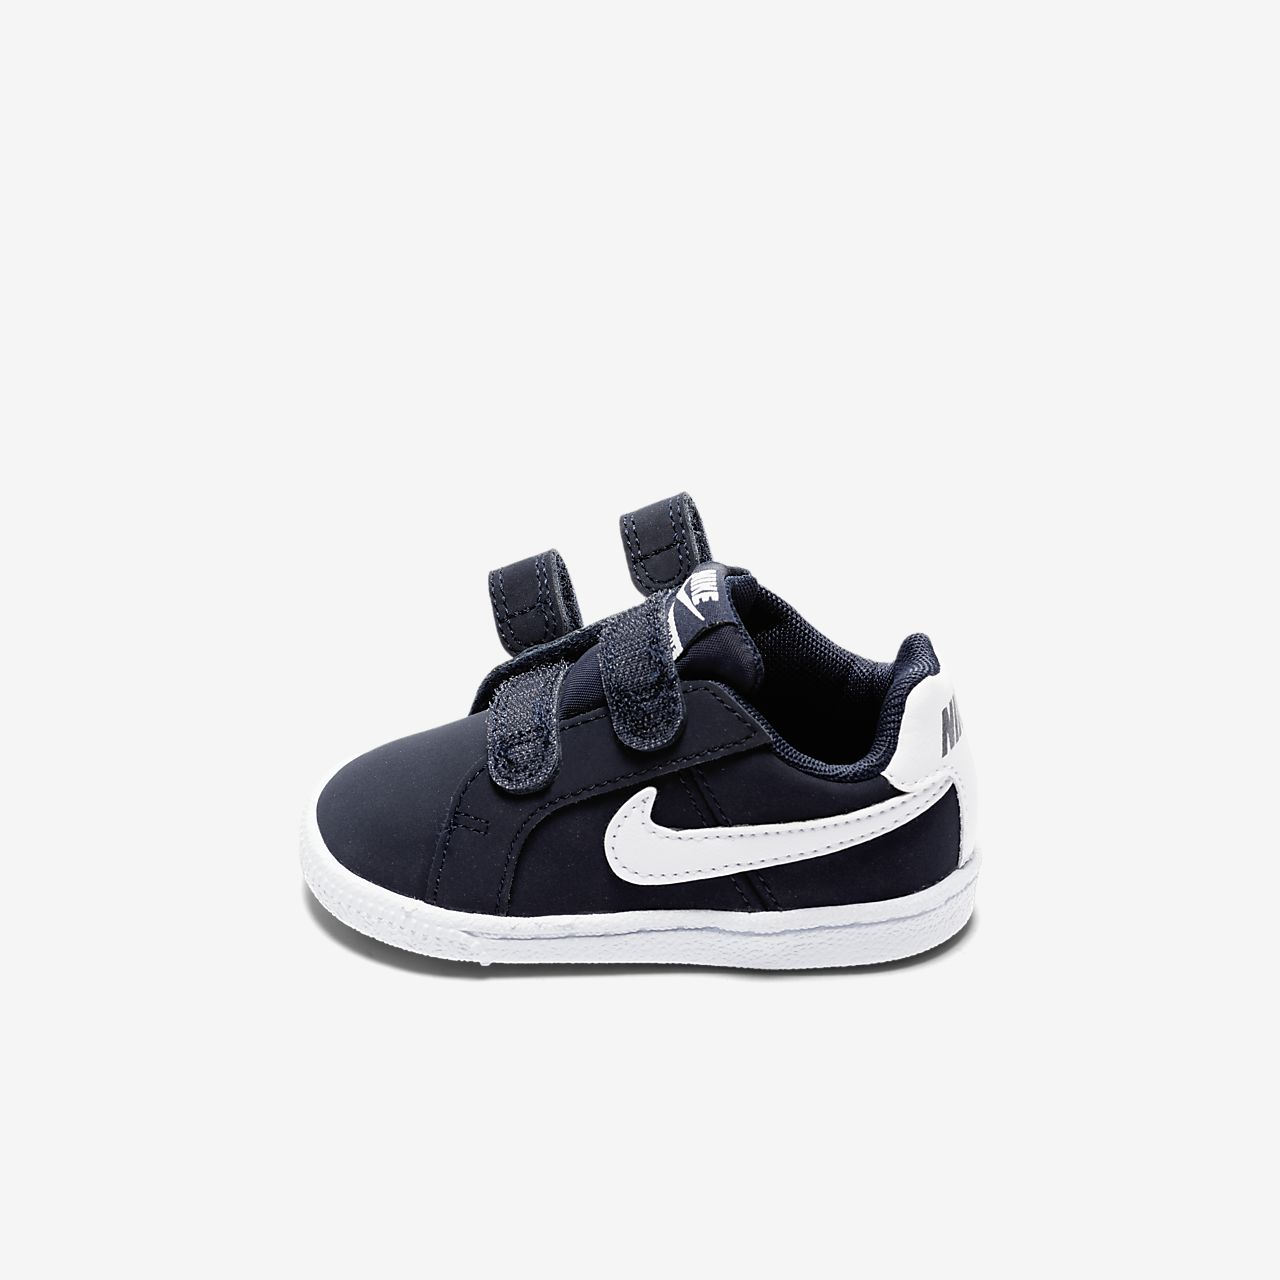 993023e2641e NikeCourt Royale Infant Toddler Shoe. Nike.com